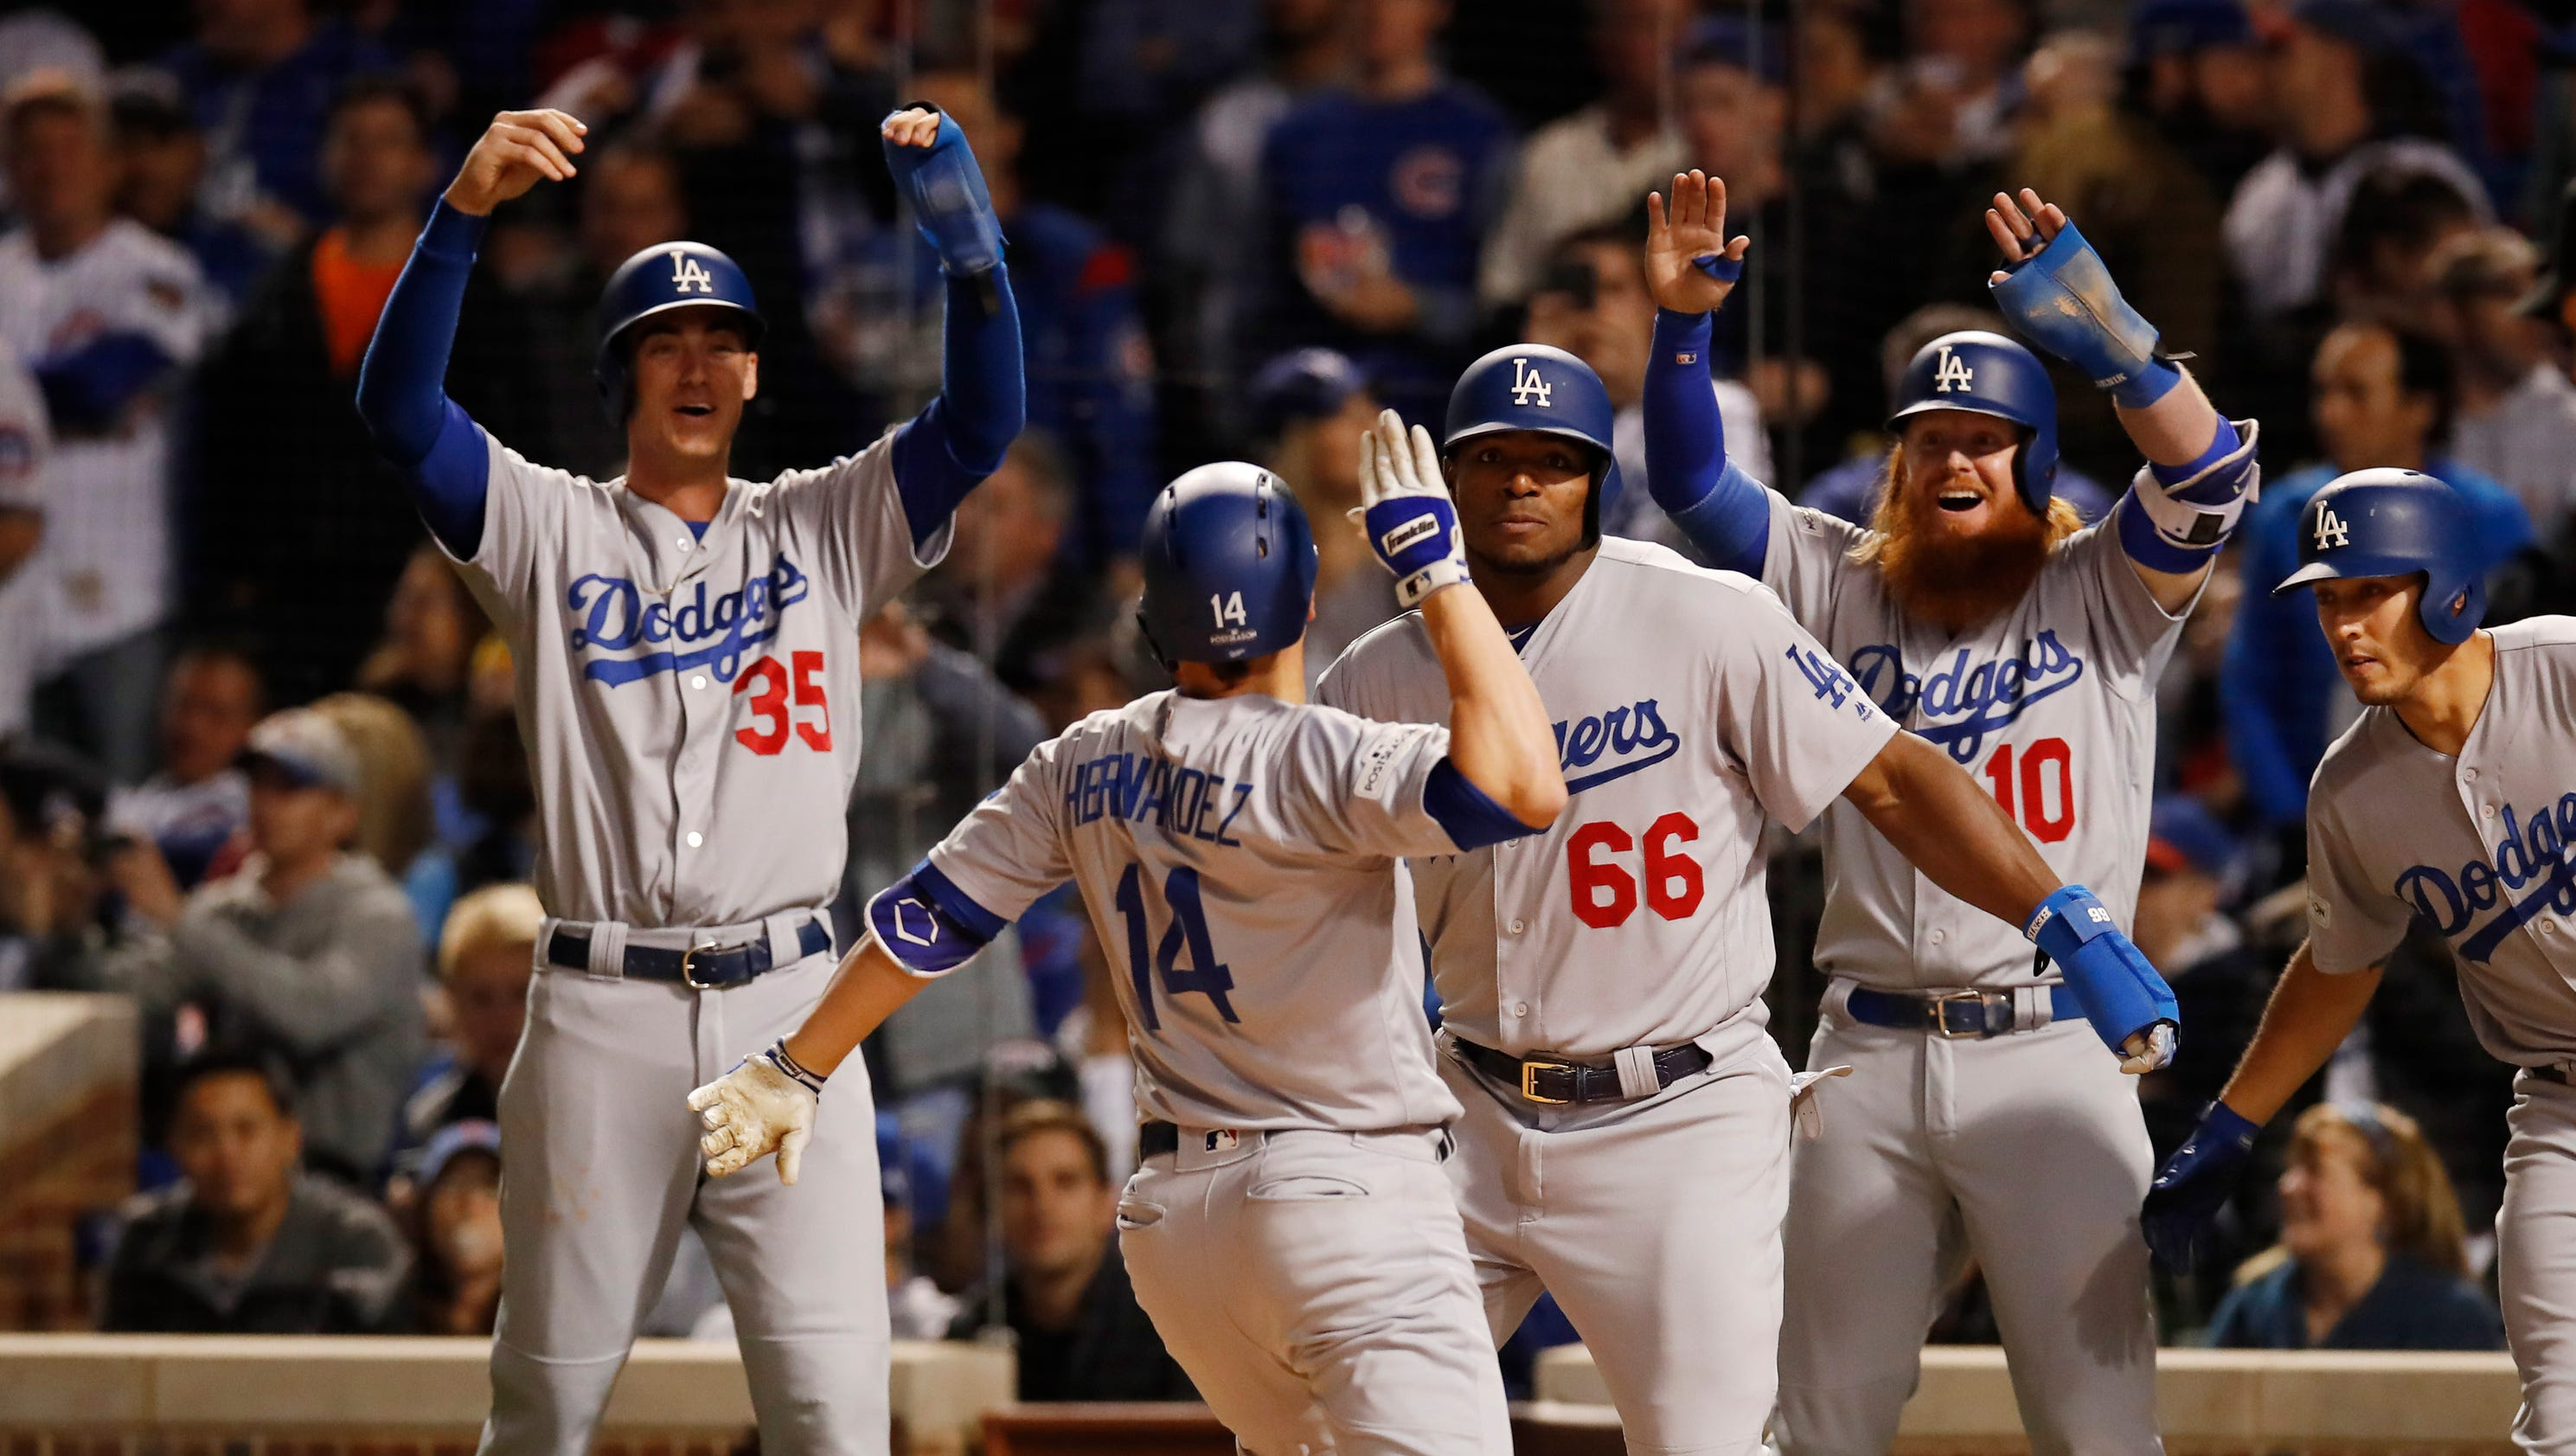 636440497458146779-usp-mlb-nlcs-los-angeles-dodgers-at-chicago-cubs-94707183